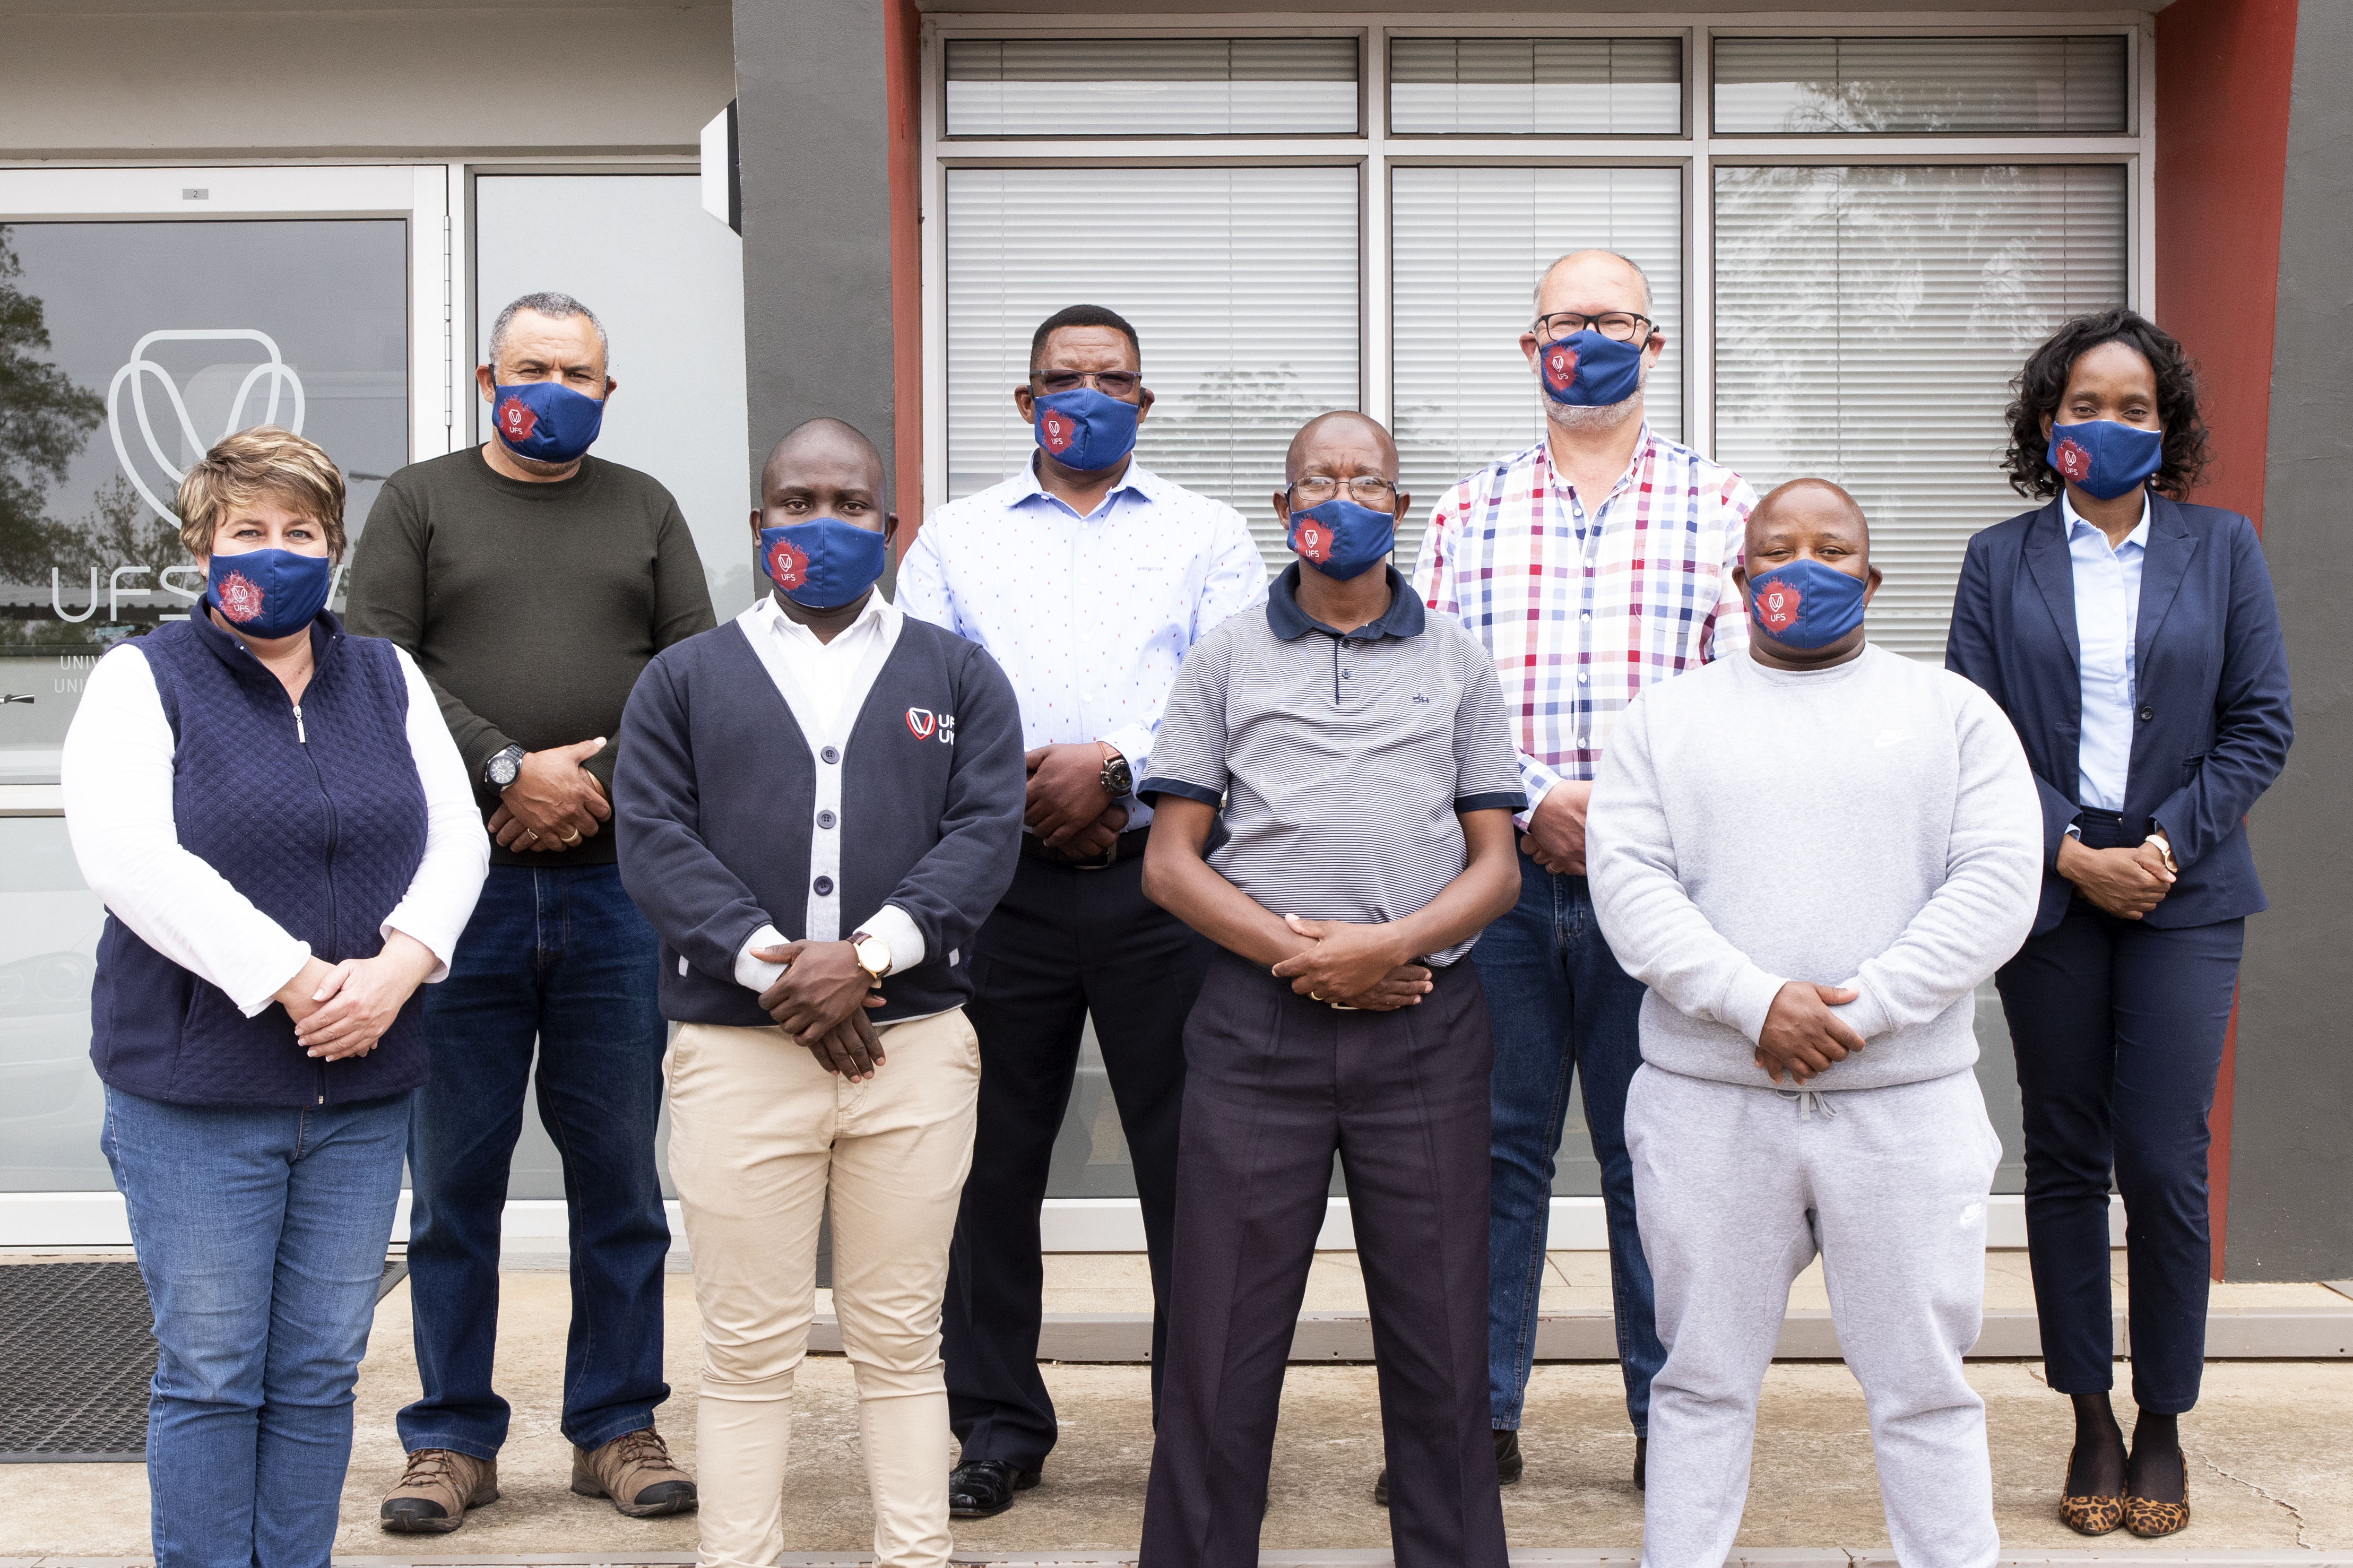 Bloemfontein Campus staff from Protection Services.